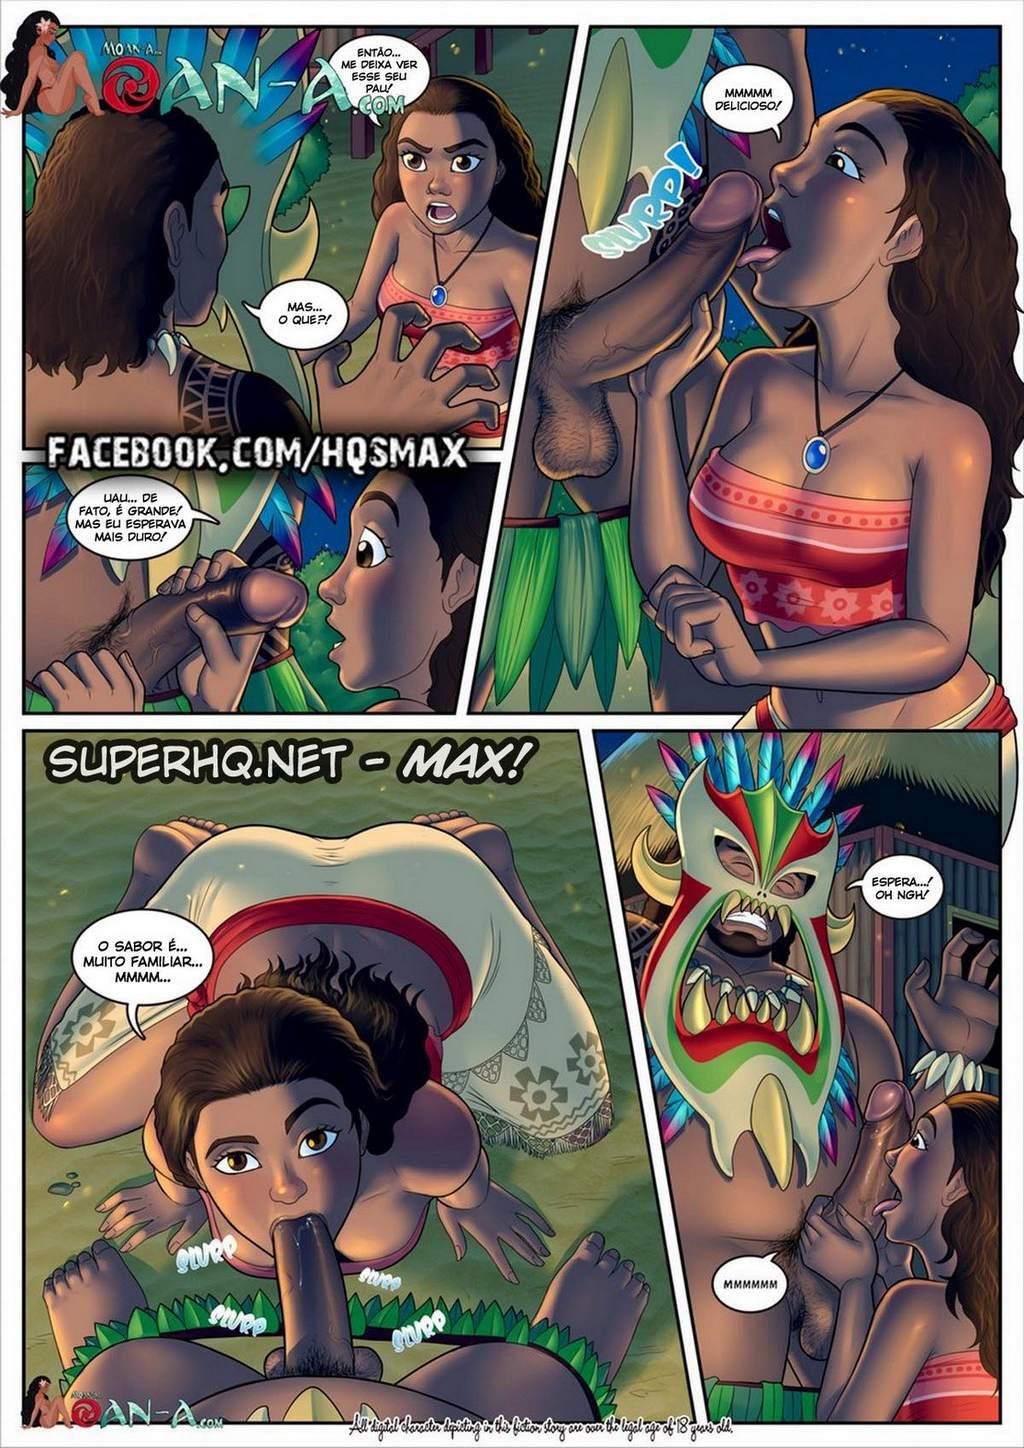 Moana – A ilha do gemido part 1 Disney Hentai Pag. 07 - hentai, comics-hq